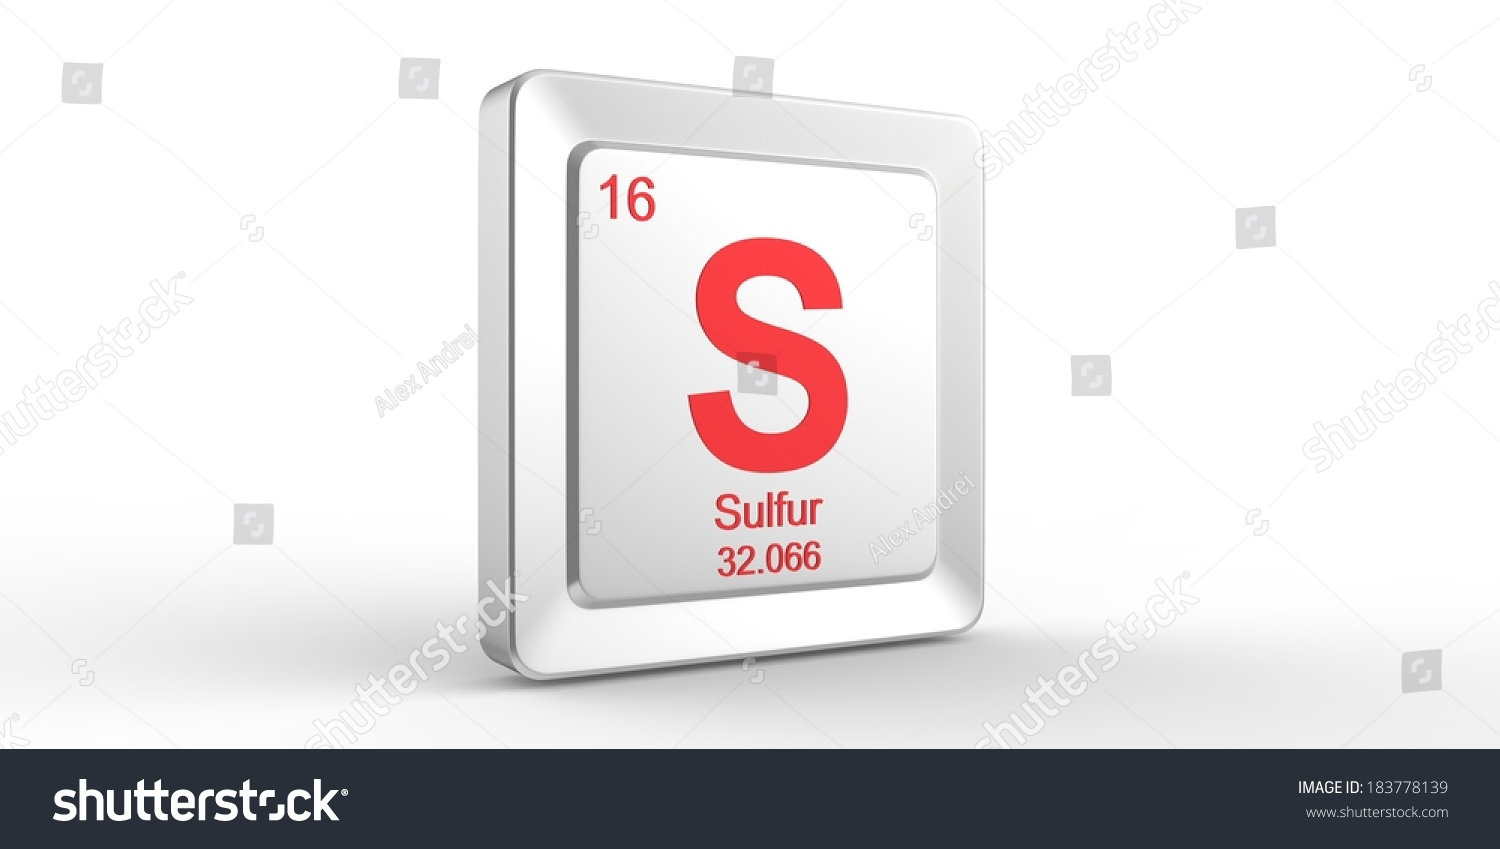 S Symbol 16 Material Sulfur Chemical Stock Illustration 183778139